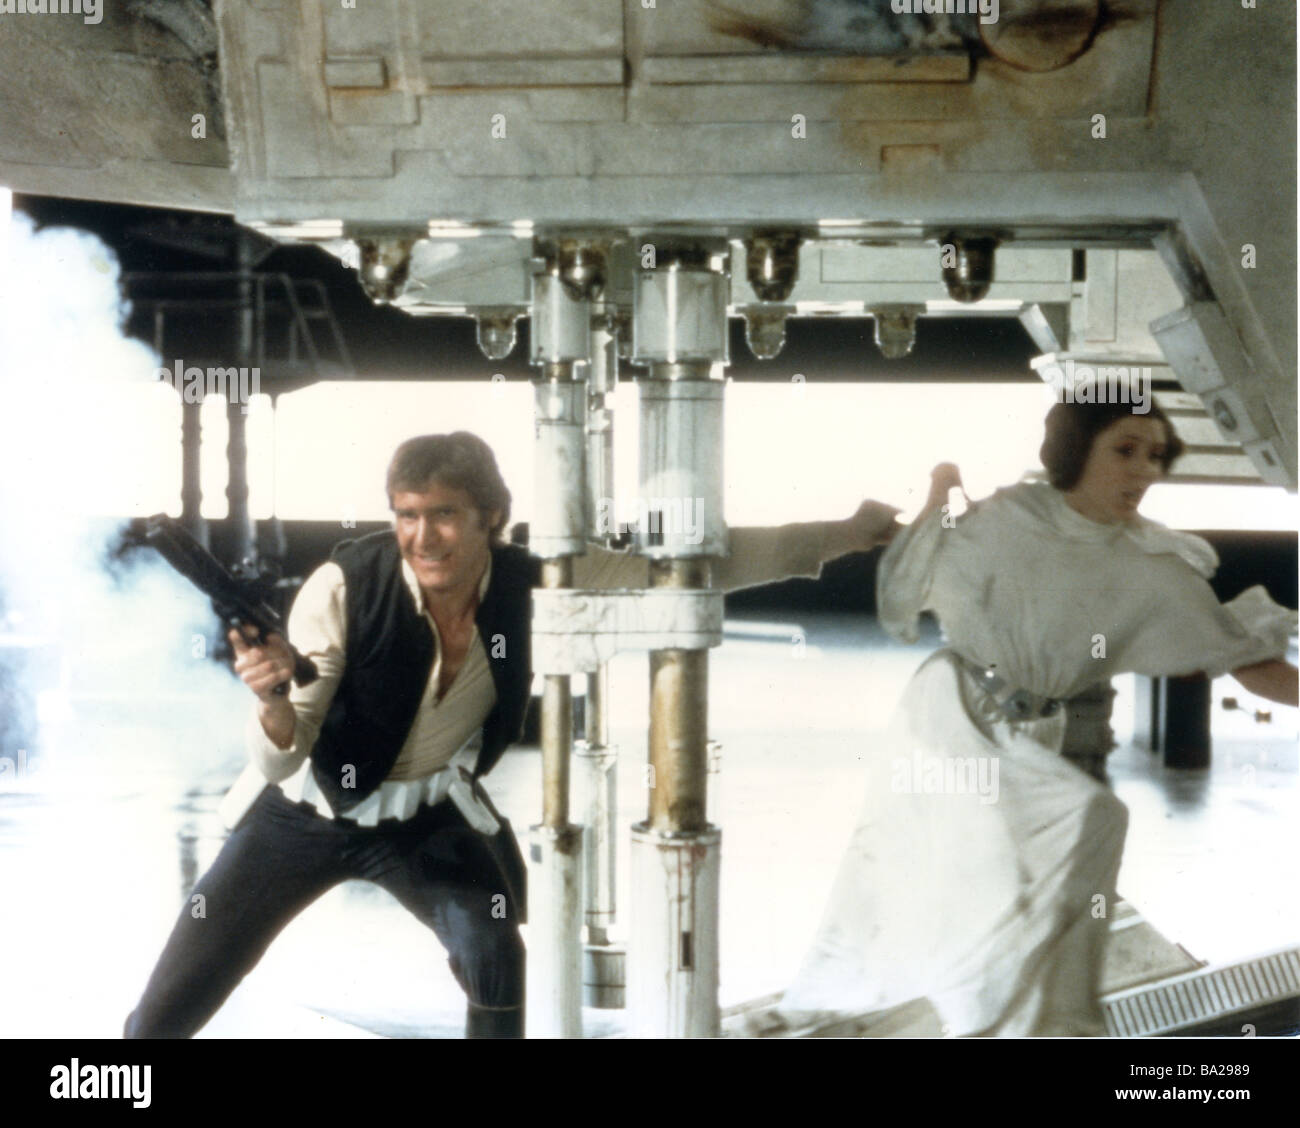 STAR WARS : EPISODE IV - A NEW HOPE 1977 TCF film with Carrie Fisher and Harrison Ford - Stock Image